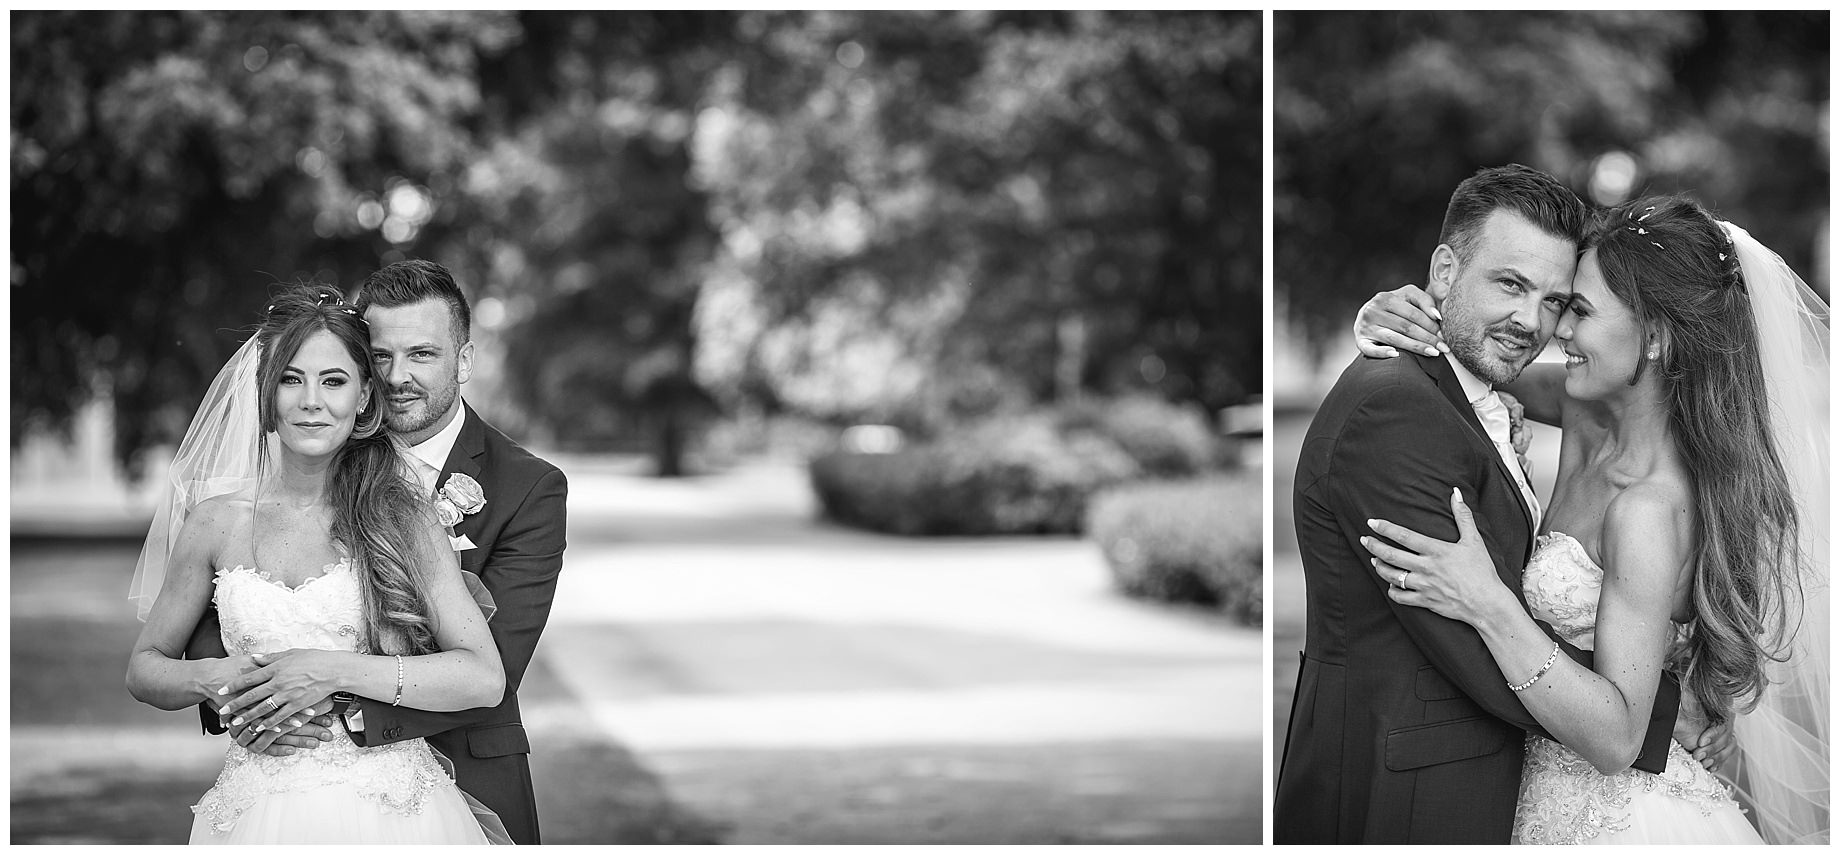 Stowe House Wedding Photography in black and white of the bride and groom